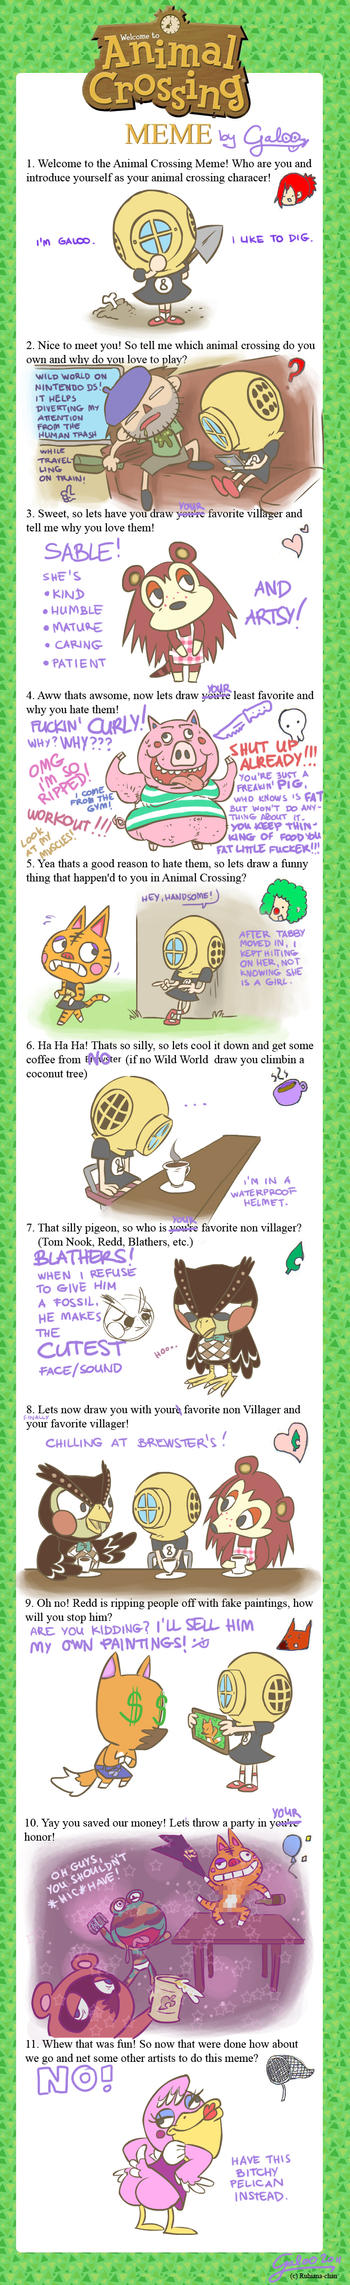 animal crossing meme filled by galoogamelady on deviantart